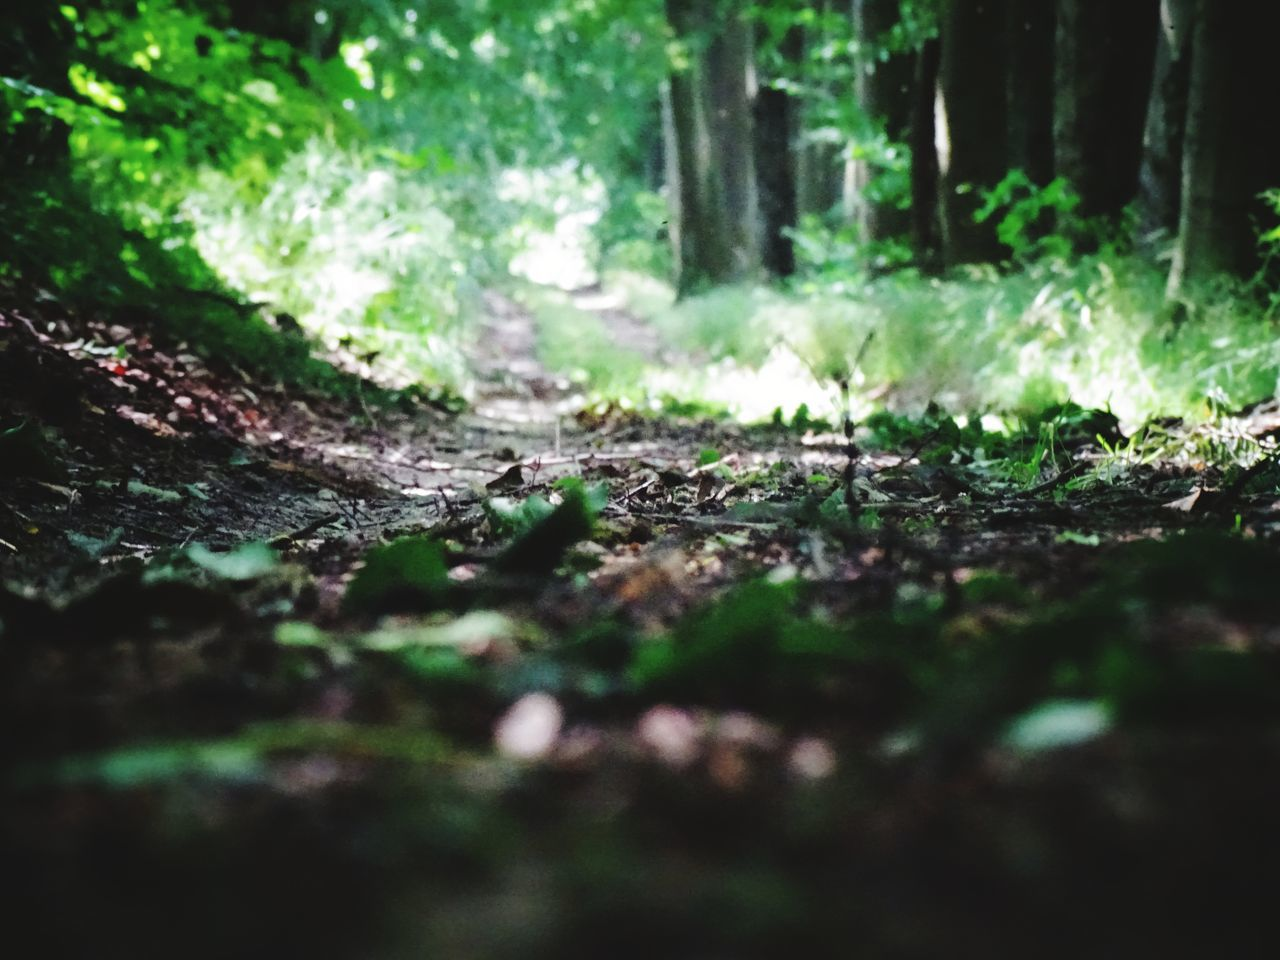 forest, nature, selective focus, tranquility, day, no people, tree, outdoors, growth, tree trunk, beauty in nature, close-up